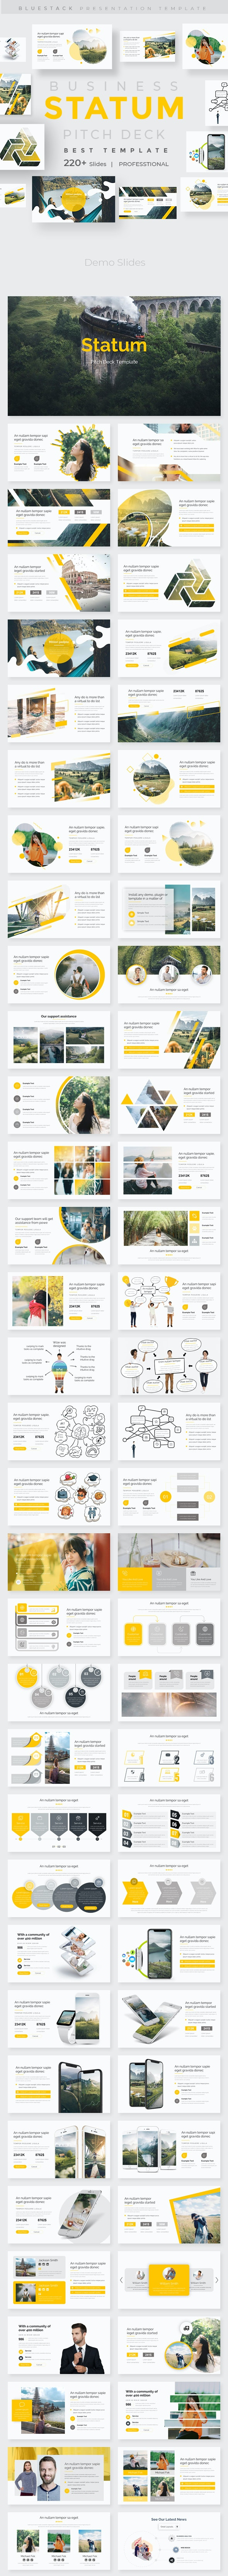 Statum Pitch Deck Keynote Template - Creative Keynote Templates